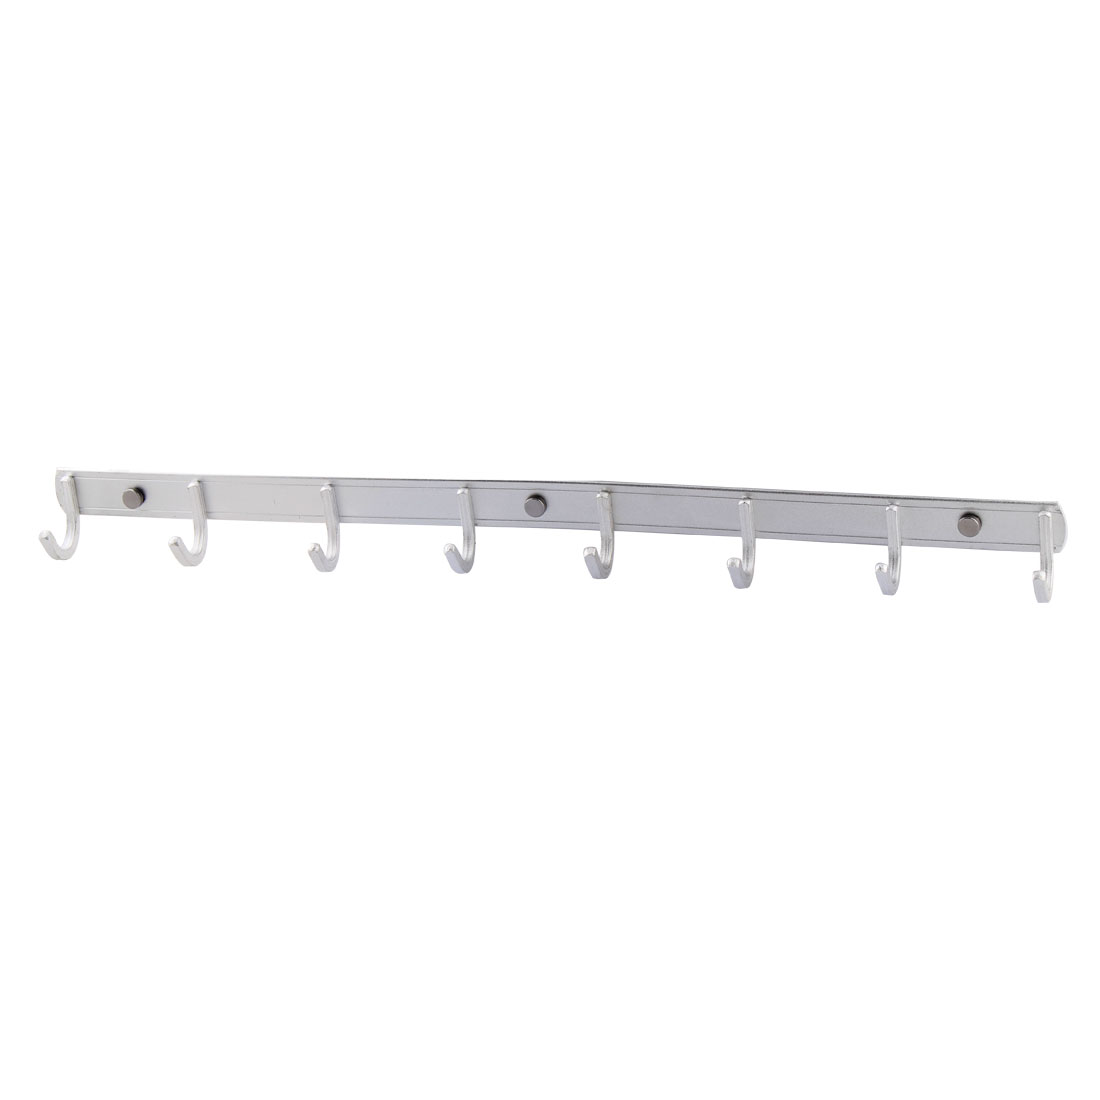 Household Alloy Wall Mount 8 Hooks Towel Coat Hat Rack Hanger Silver Tone 57cm Long